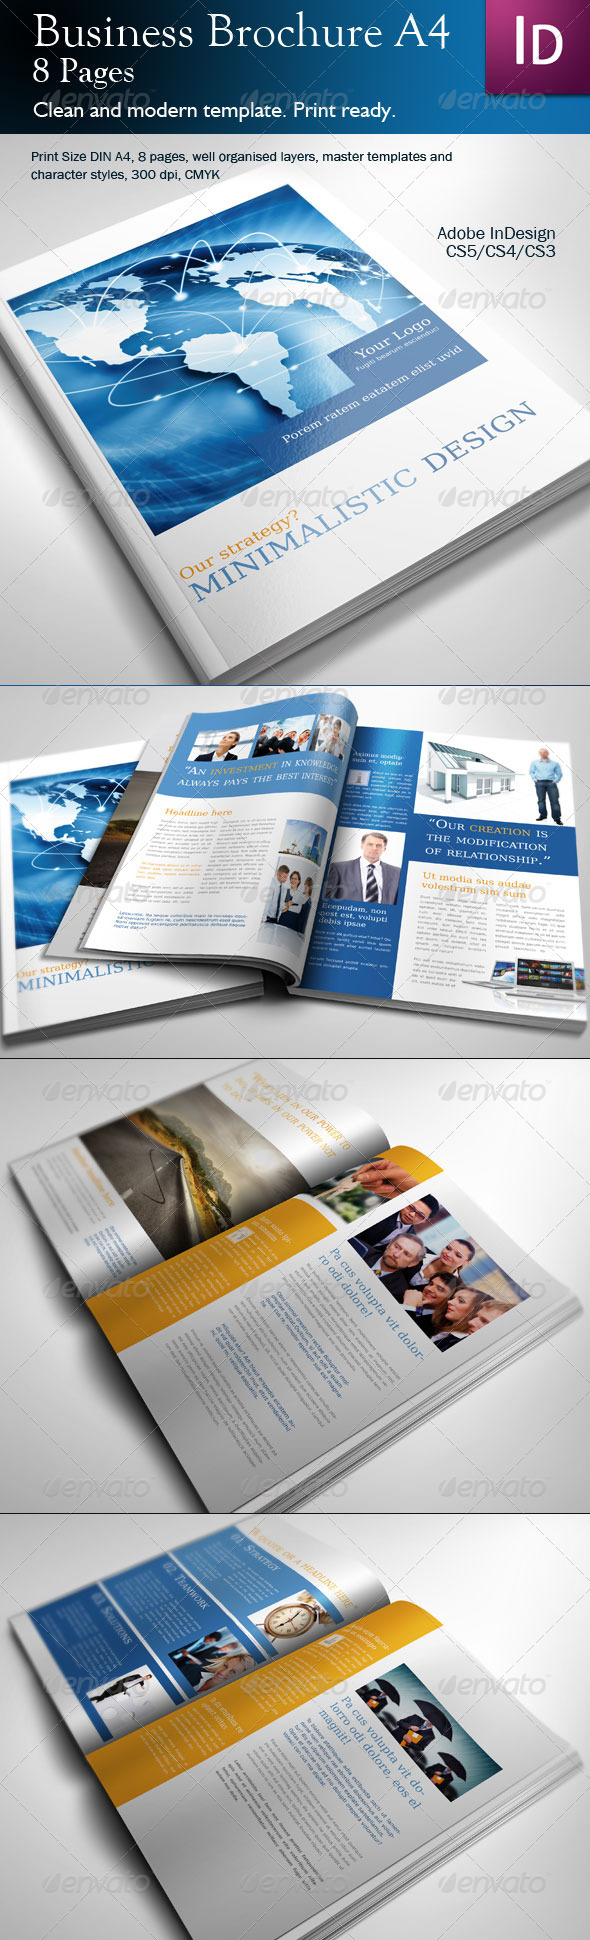 GraphicRiver Business Brochure A4 478068